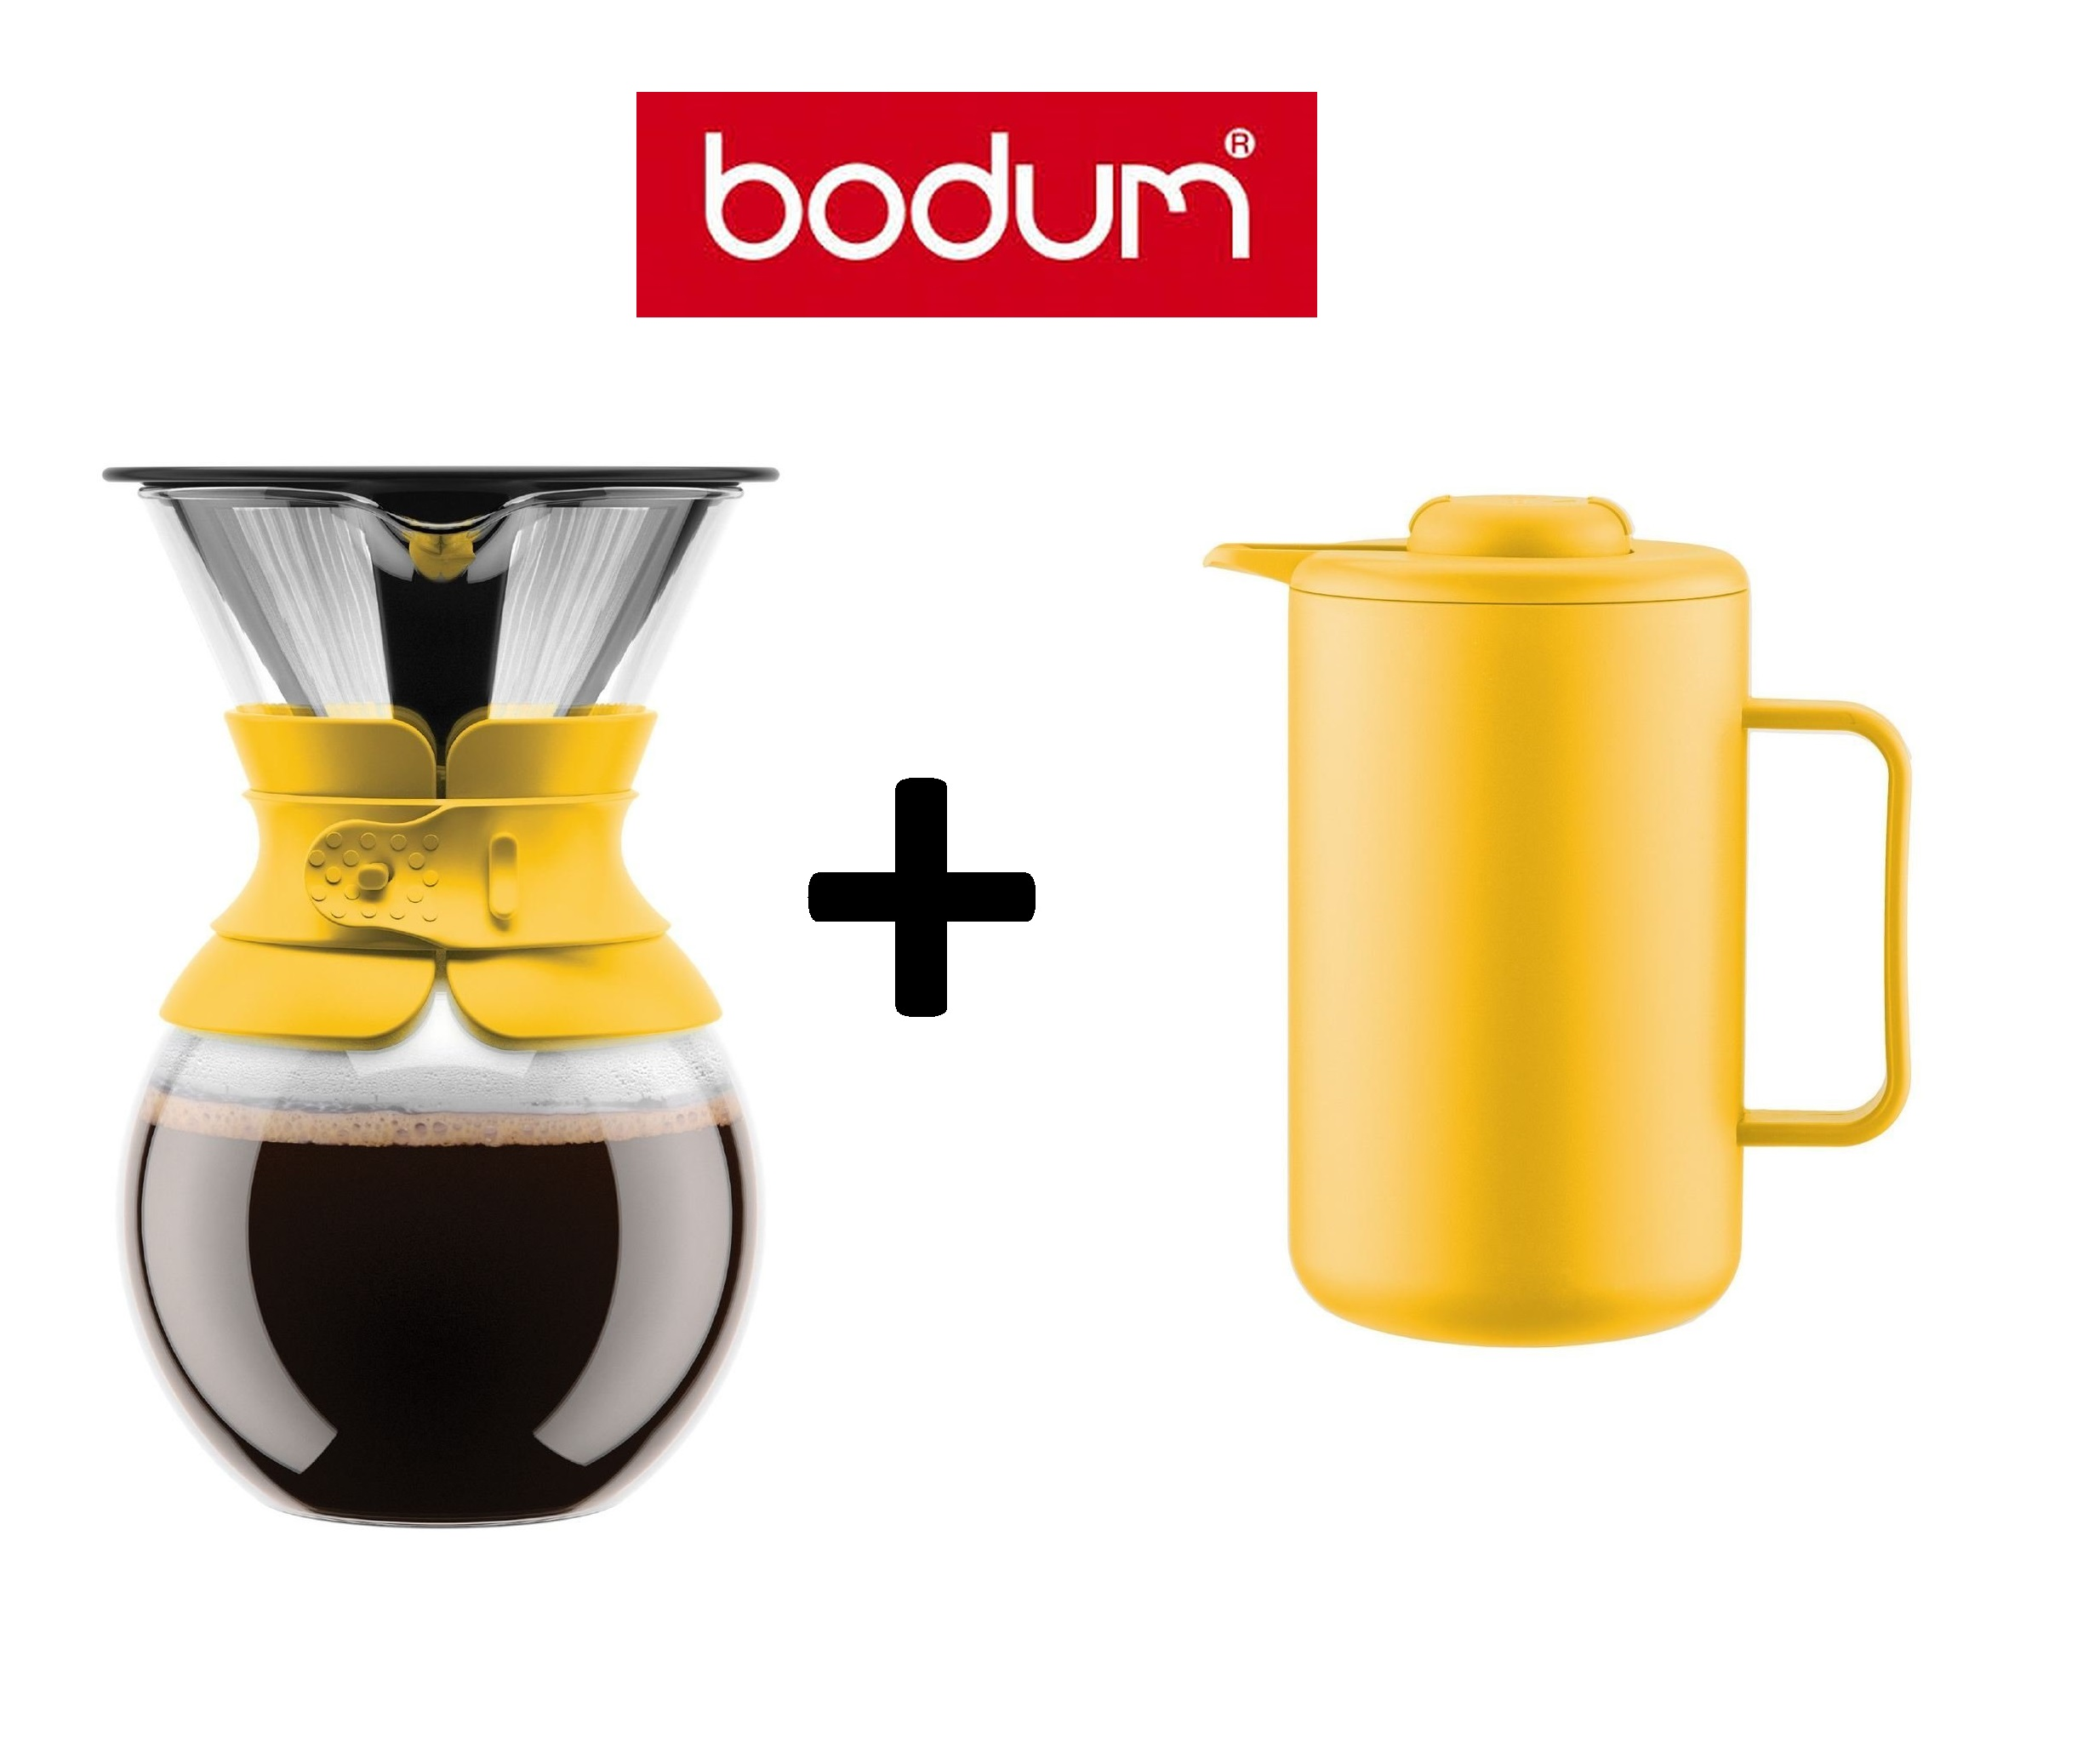 bodum pour over gelb kaffeebereiter mit permanentfilter thermokanne bistro ebay. Black Bedroom Furniture Sets. Home Design Ideas